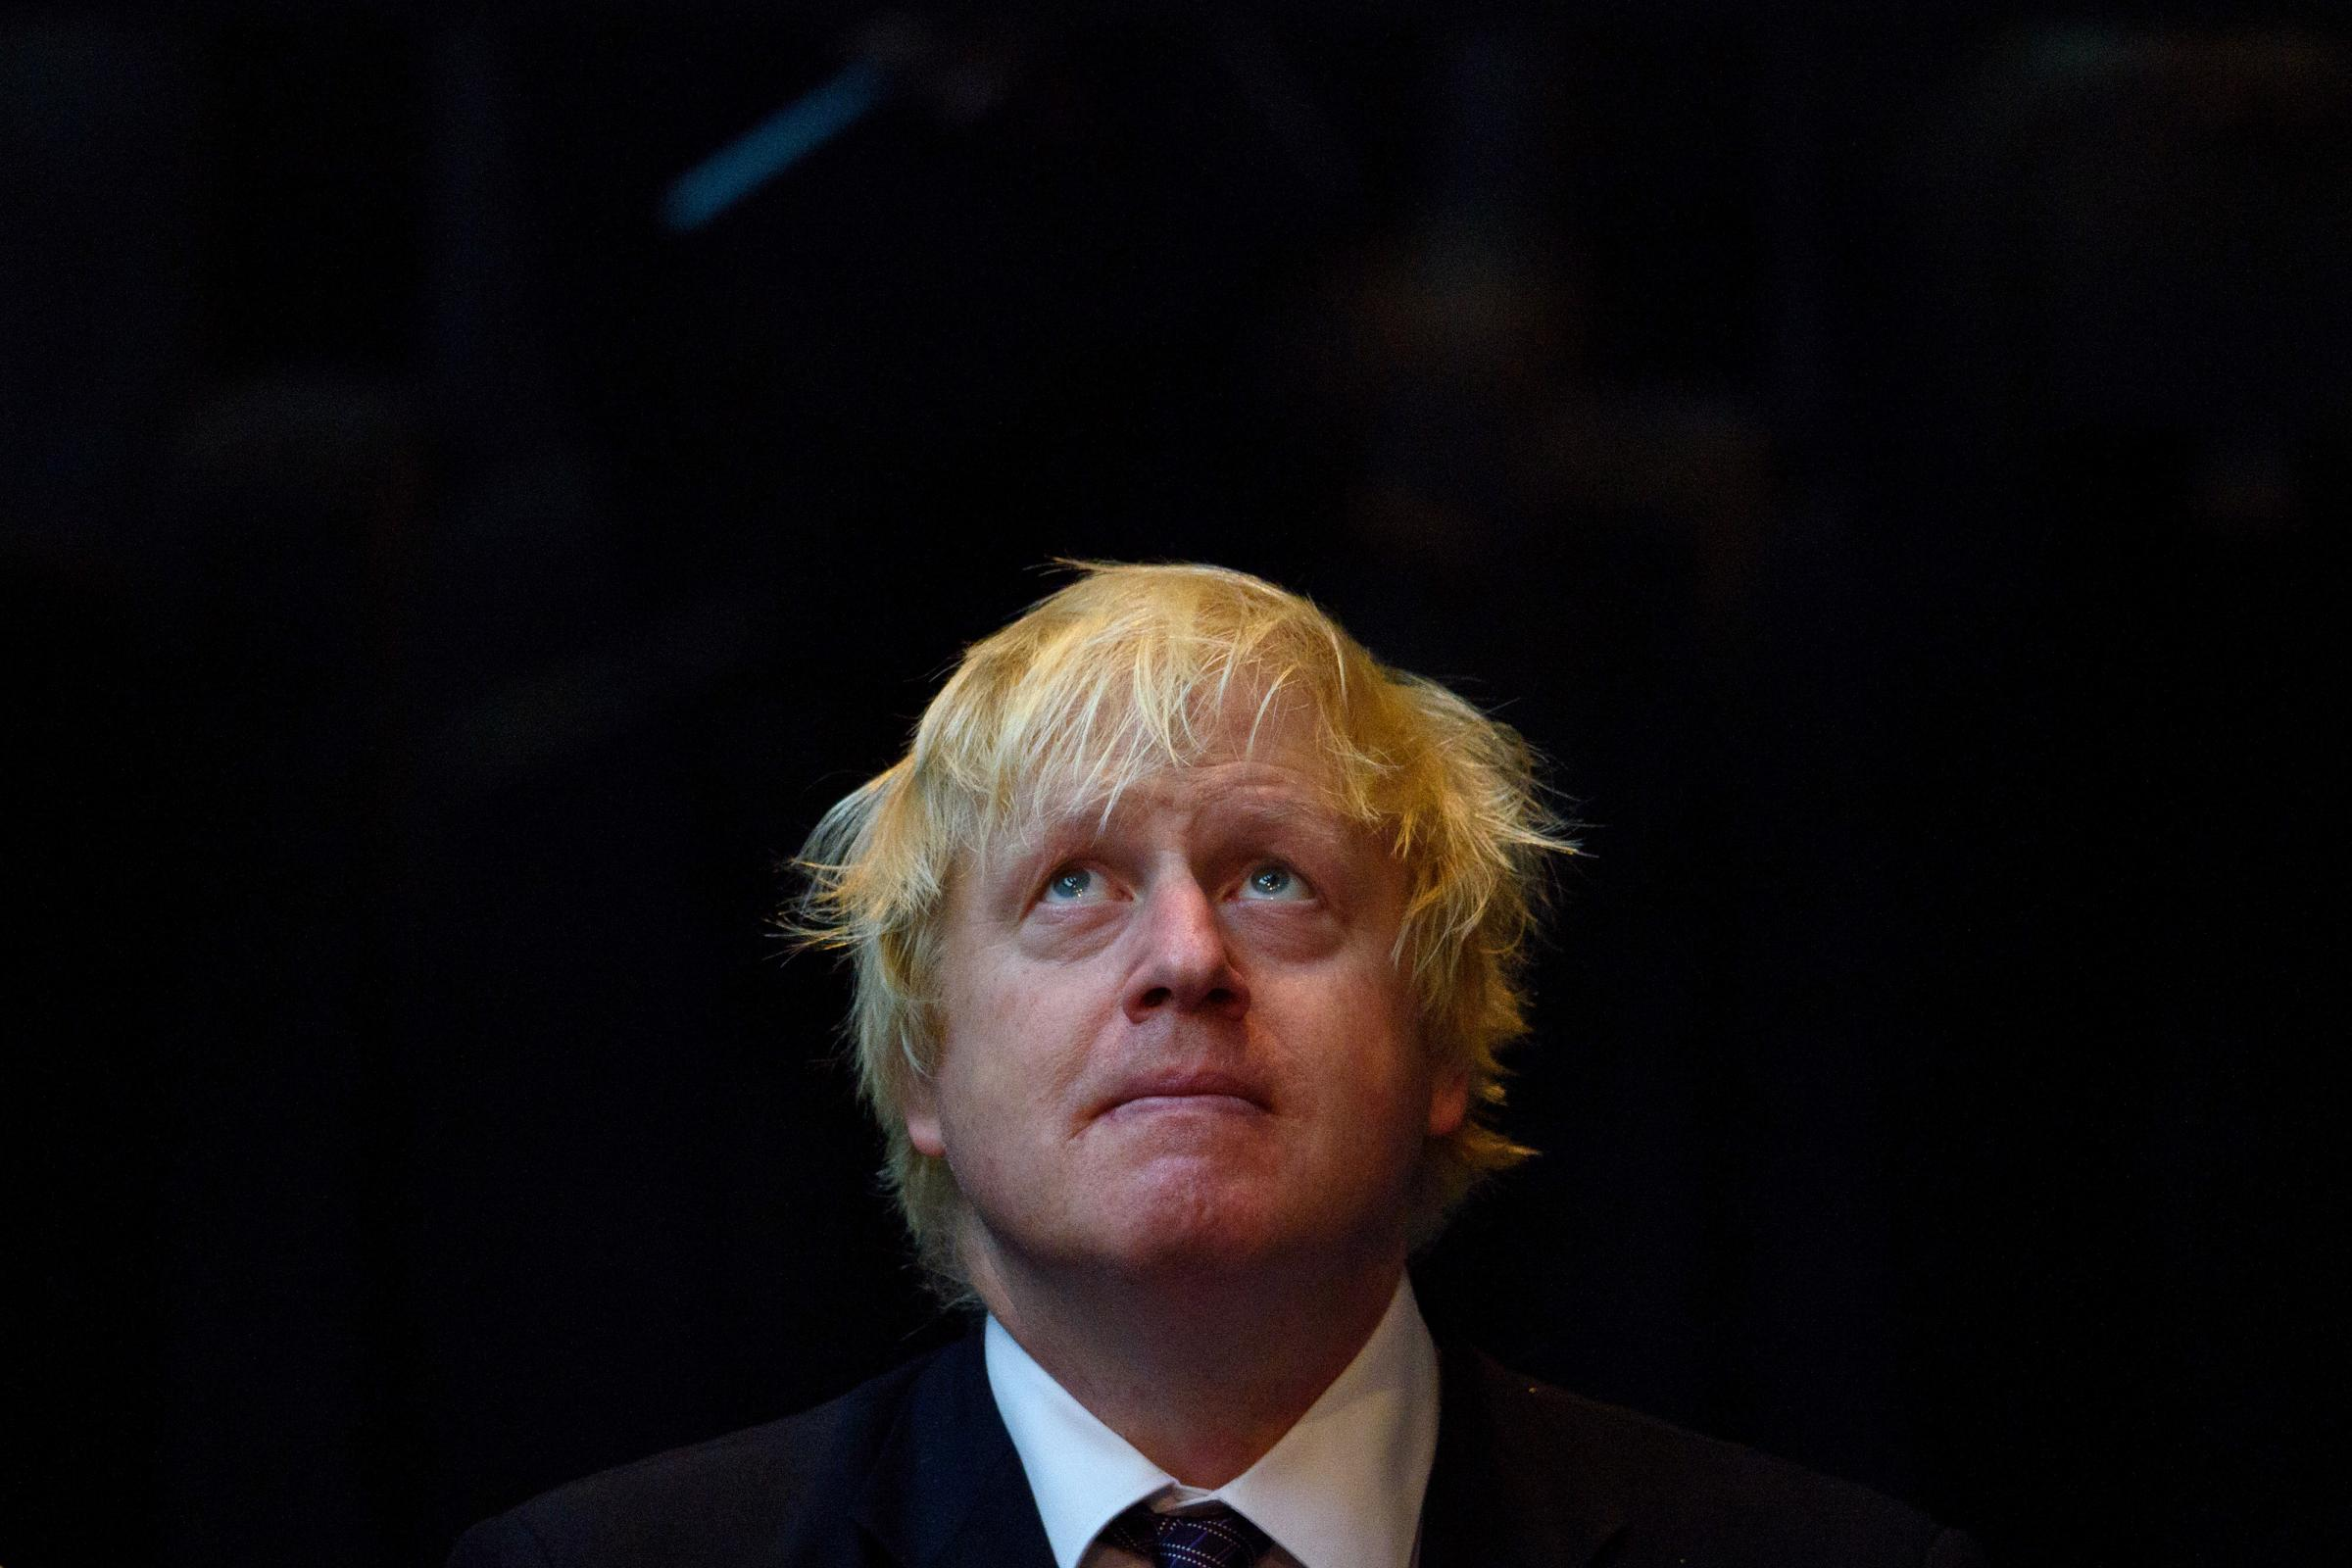 Boris Johnson has been accused of misleading the public. Photograph: Getty